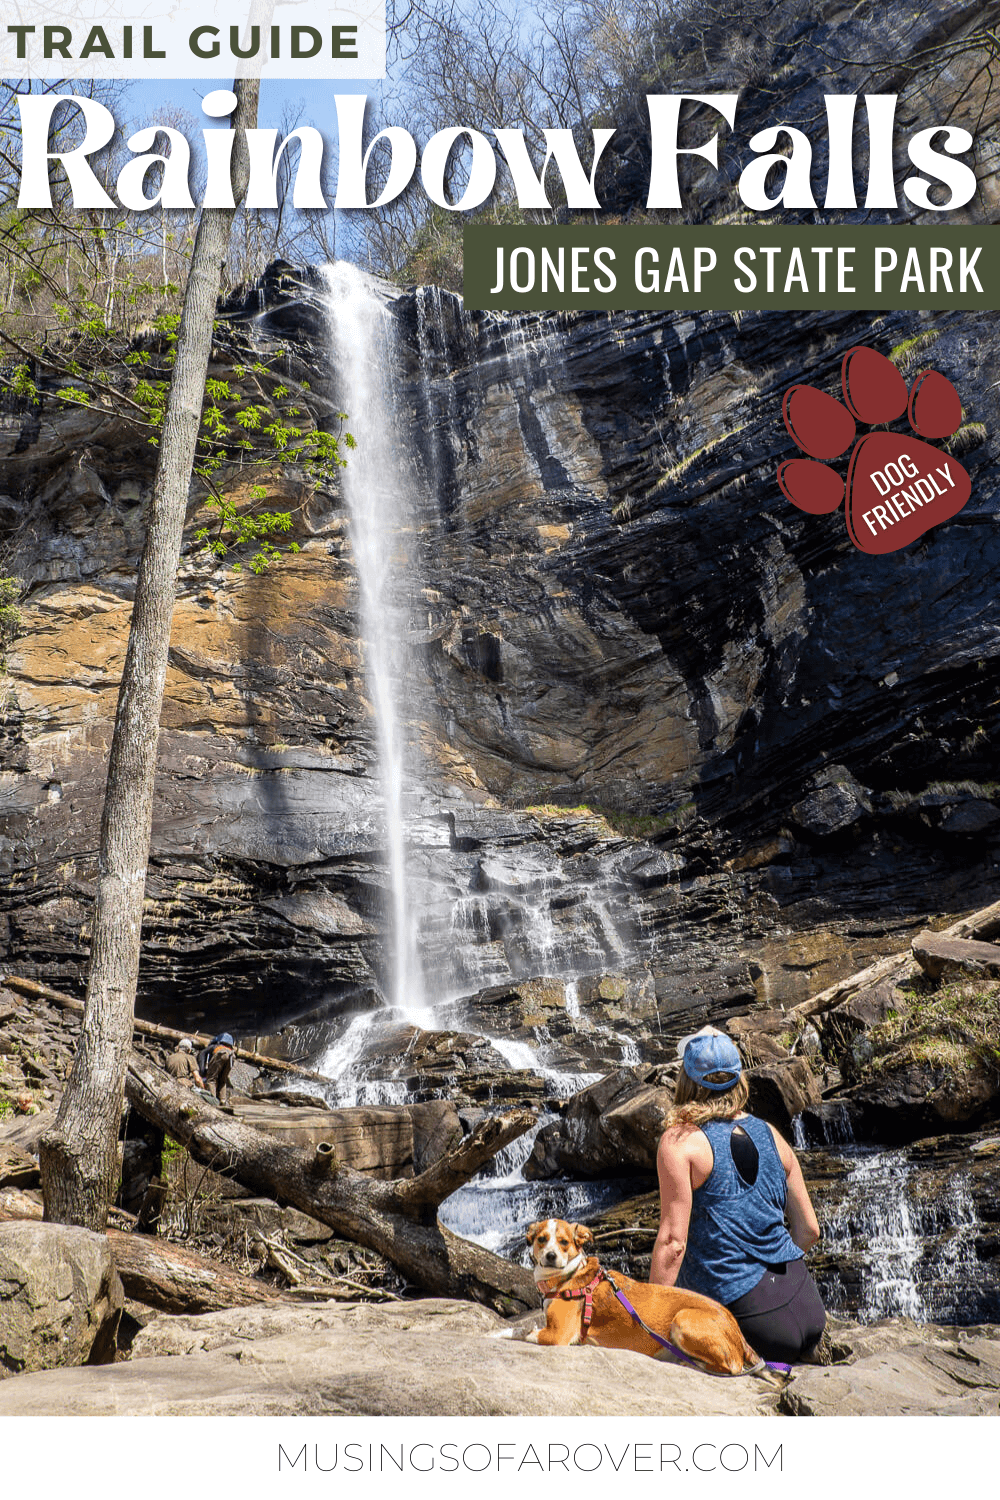 Want to visit one of the best waterfalls near Greenville, SC? Rainbow Falls in Jones Gap State Park makes a perfect day trip! At 140ft it's one of the tallest waterfalls in the region. And this hike is dog friendly!